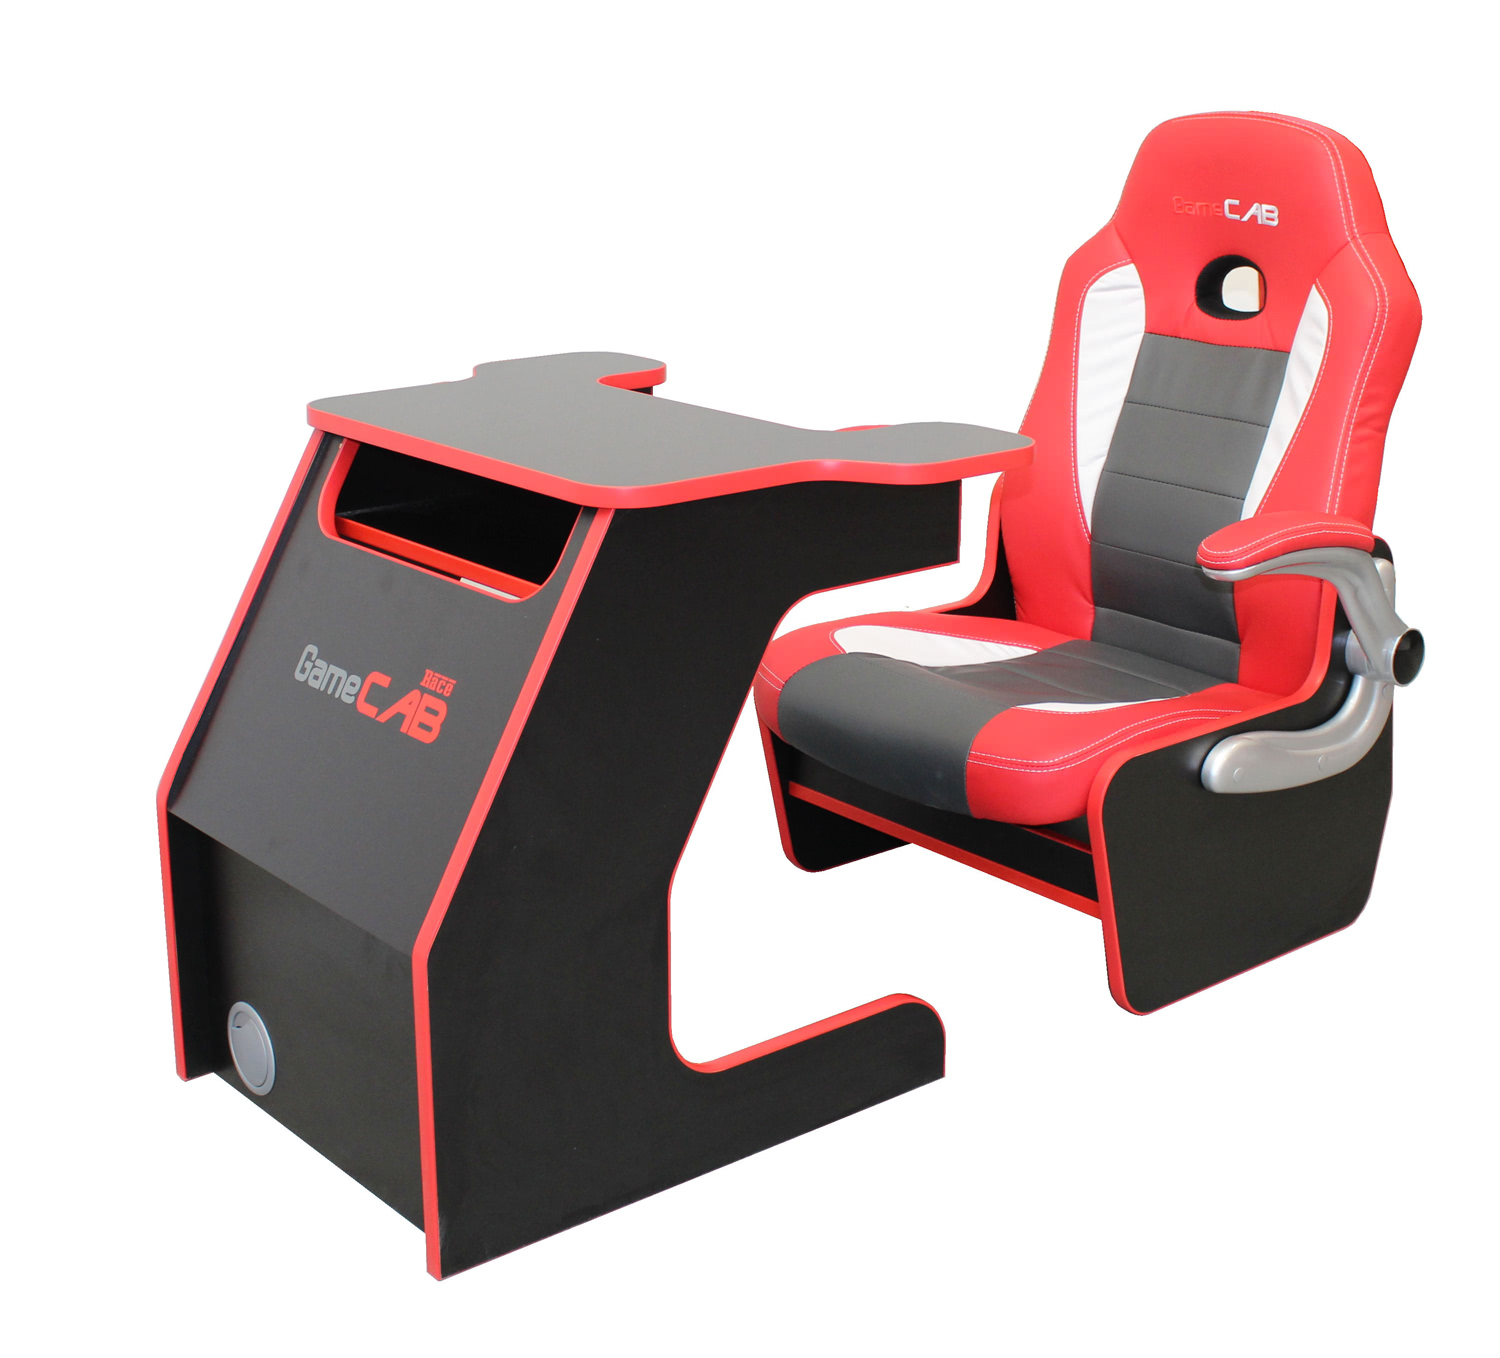 gamecab racer chair desk liberty games